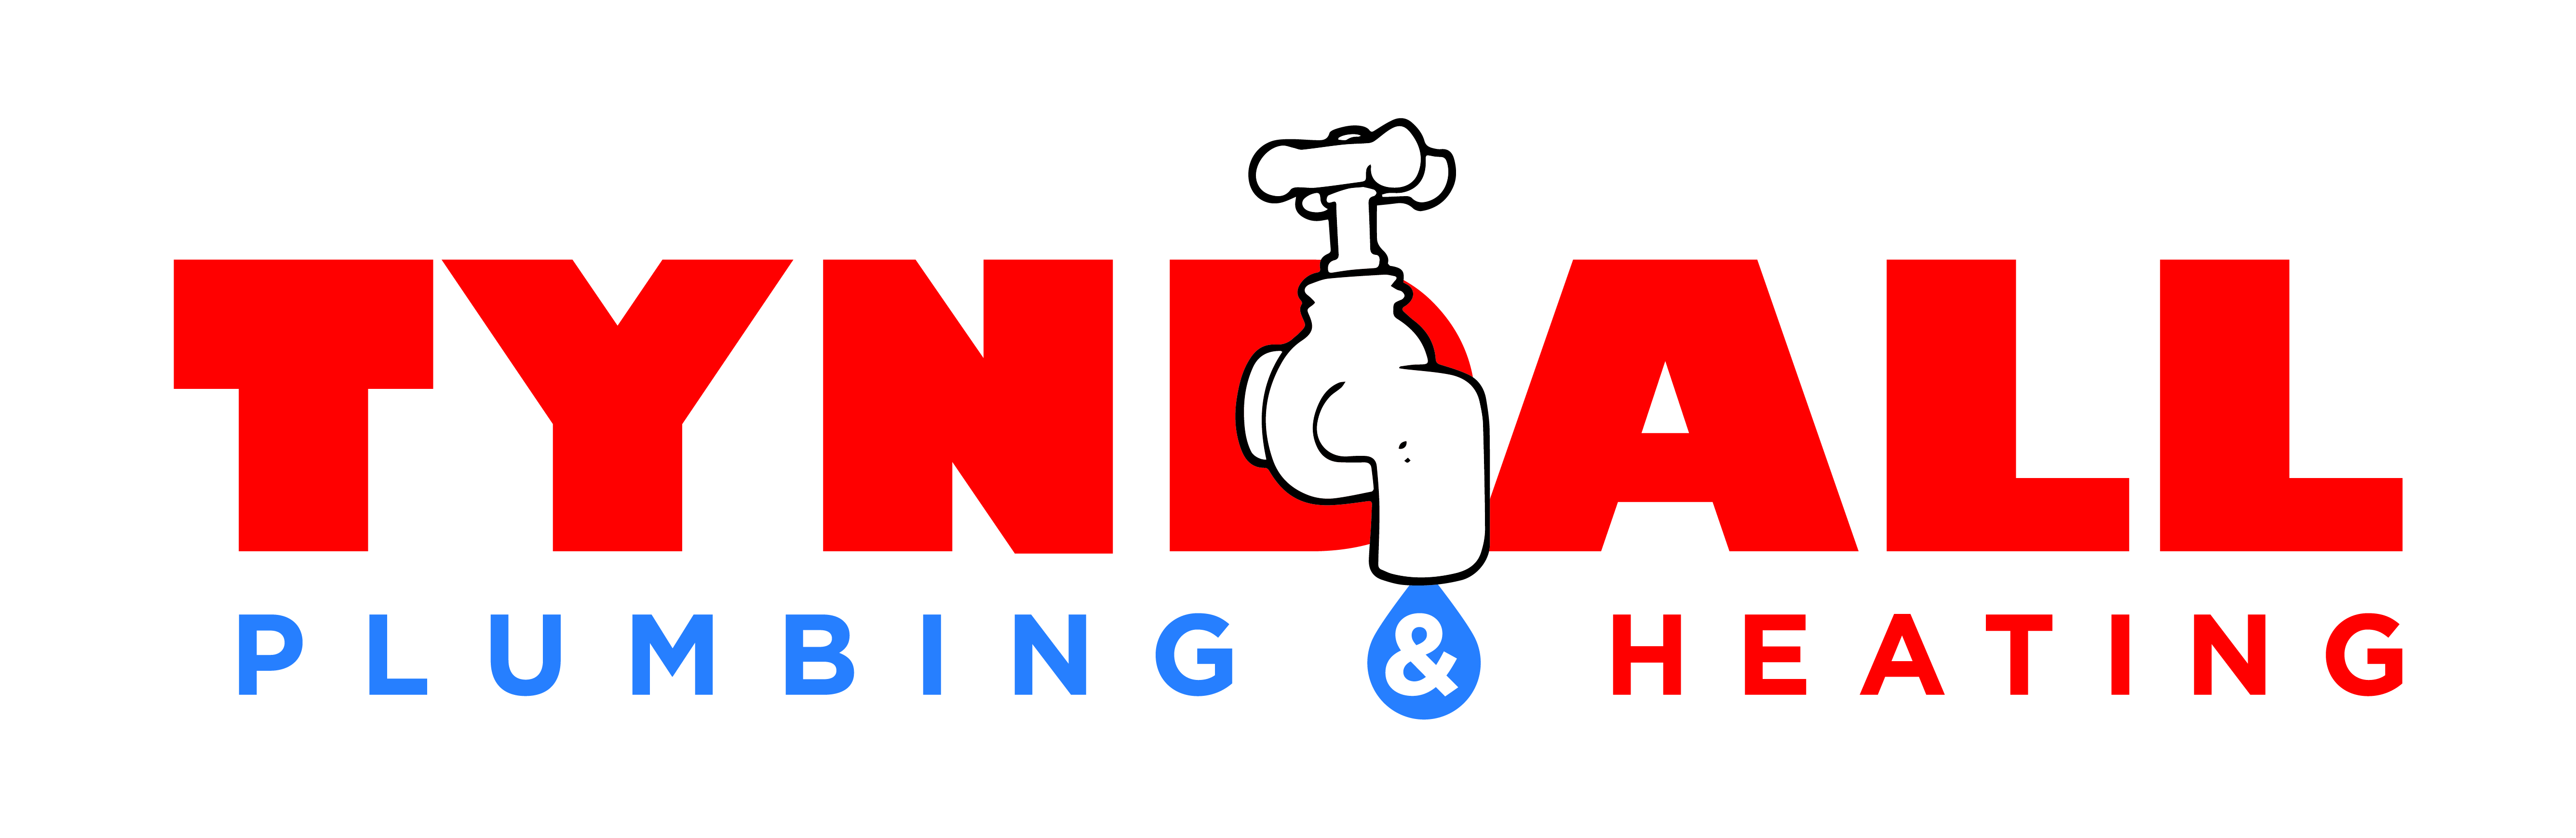 Logo Design by Rob King - Entry No. 21 in the Logo Design Contest Imaginative Logo Design for Tyndall Plumbing & Heating.